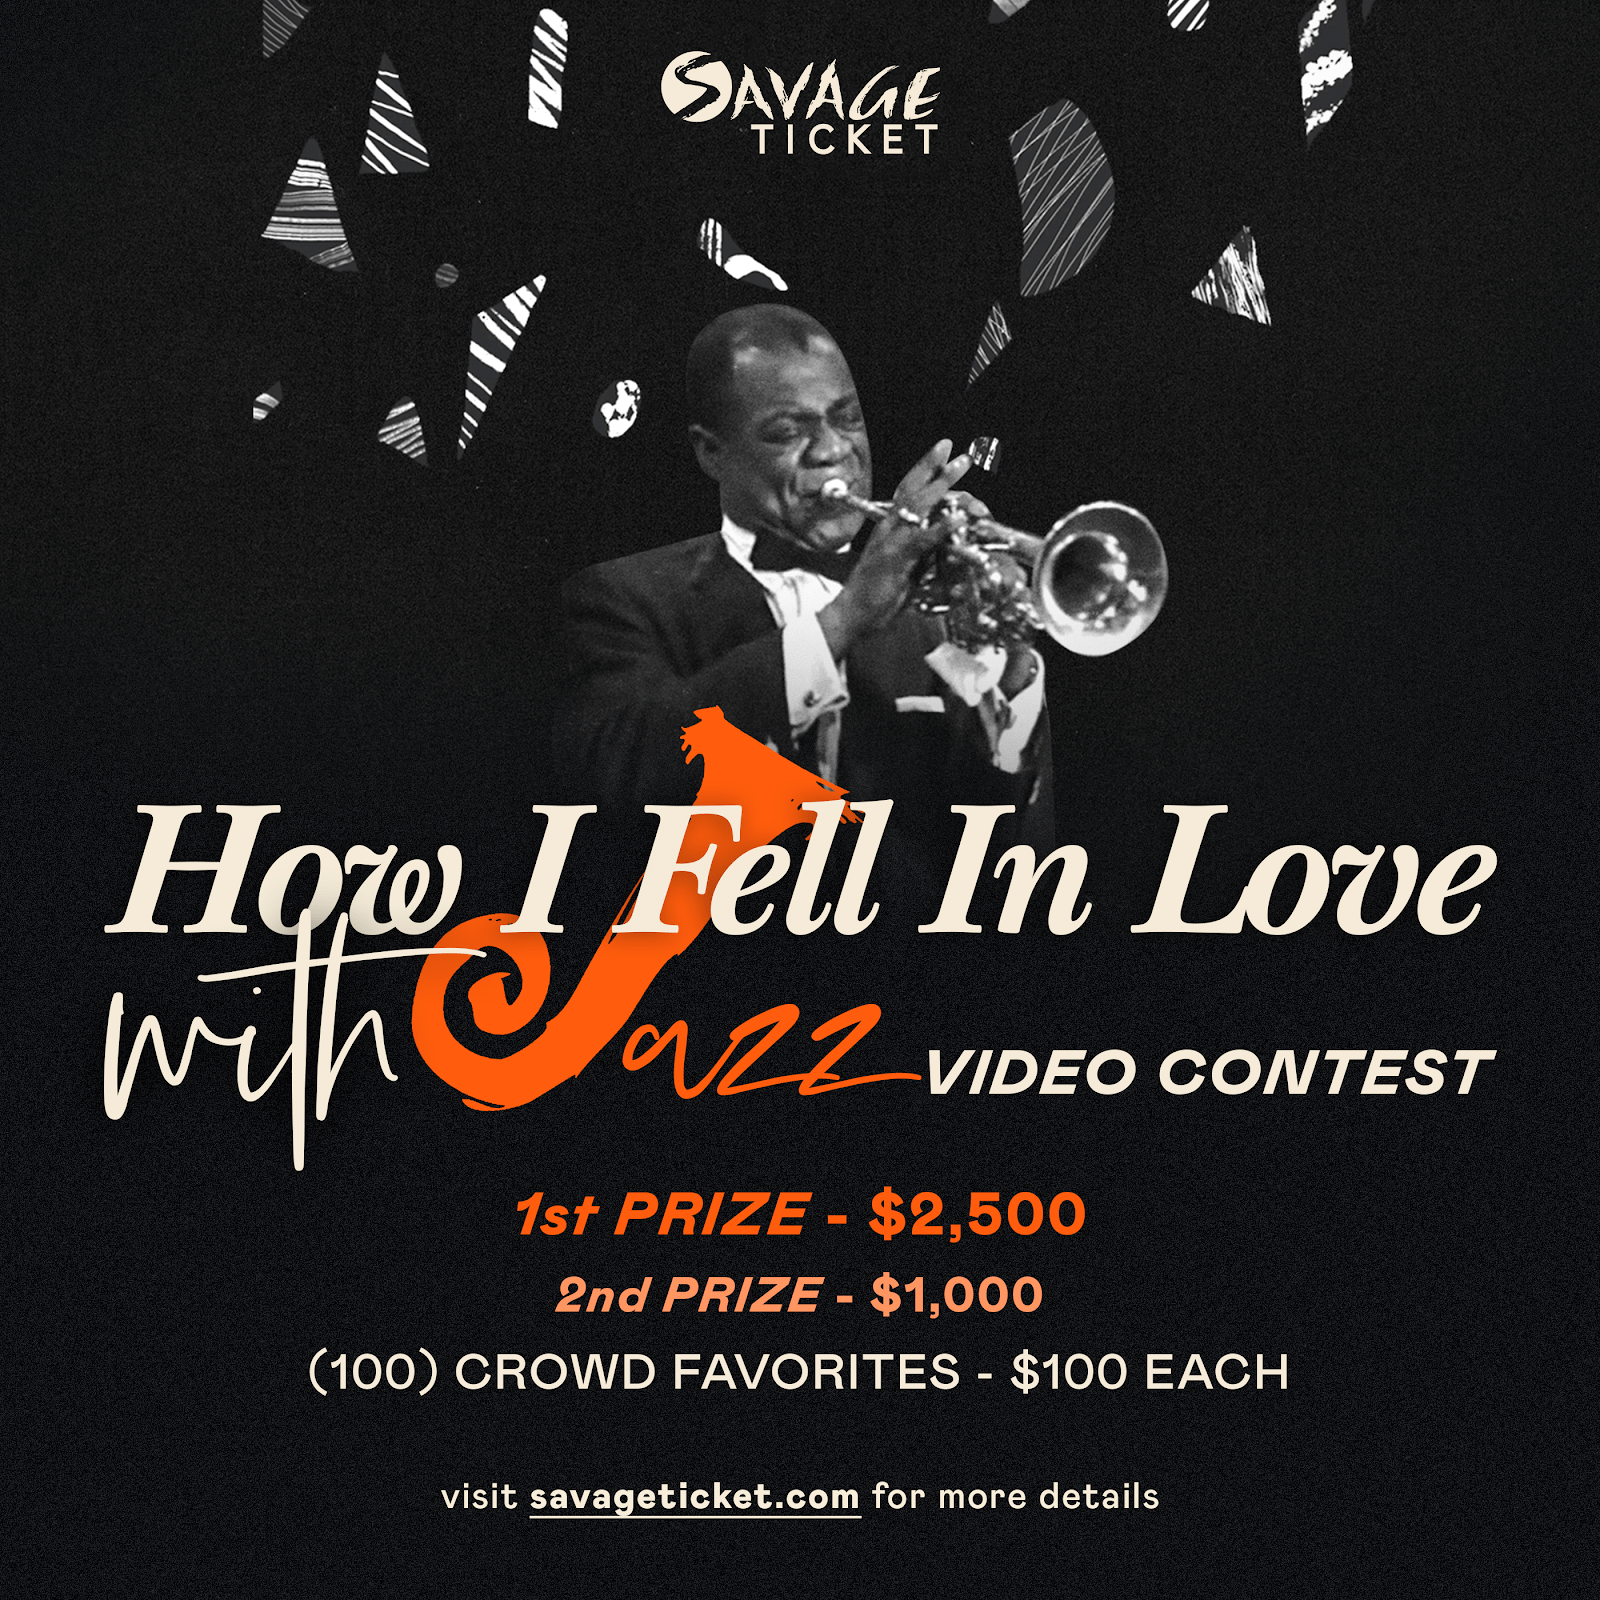 We Have 21 More Days To Celebrate Jazz: Savage Ticket Extends The How I Fell In Love With Jazz Contest To November 21st